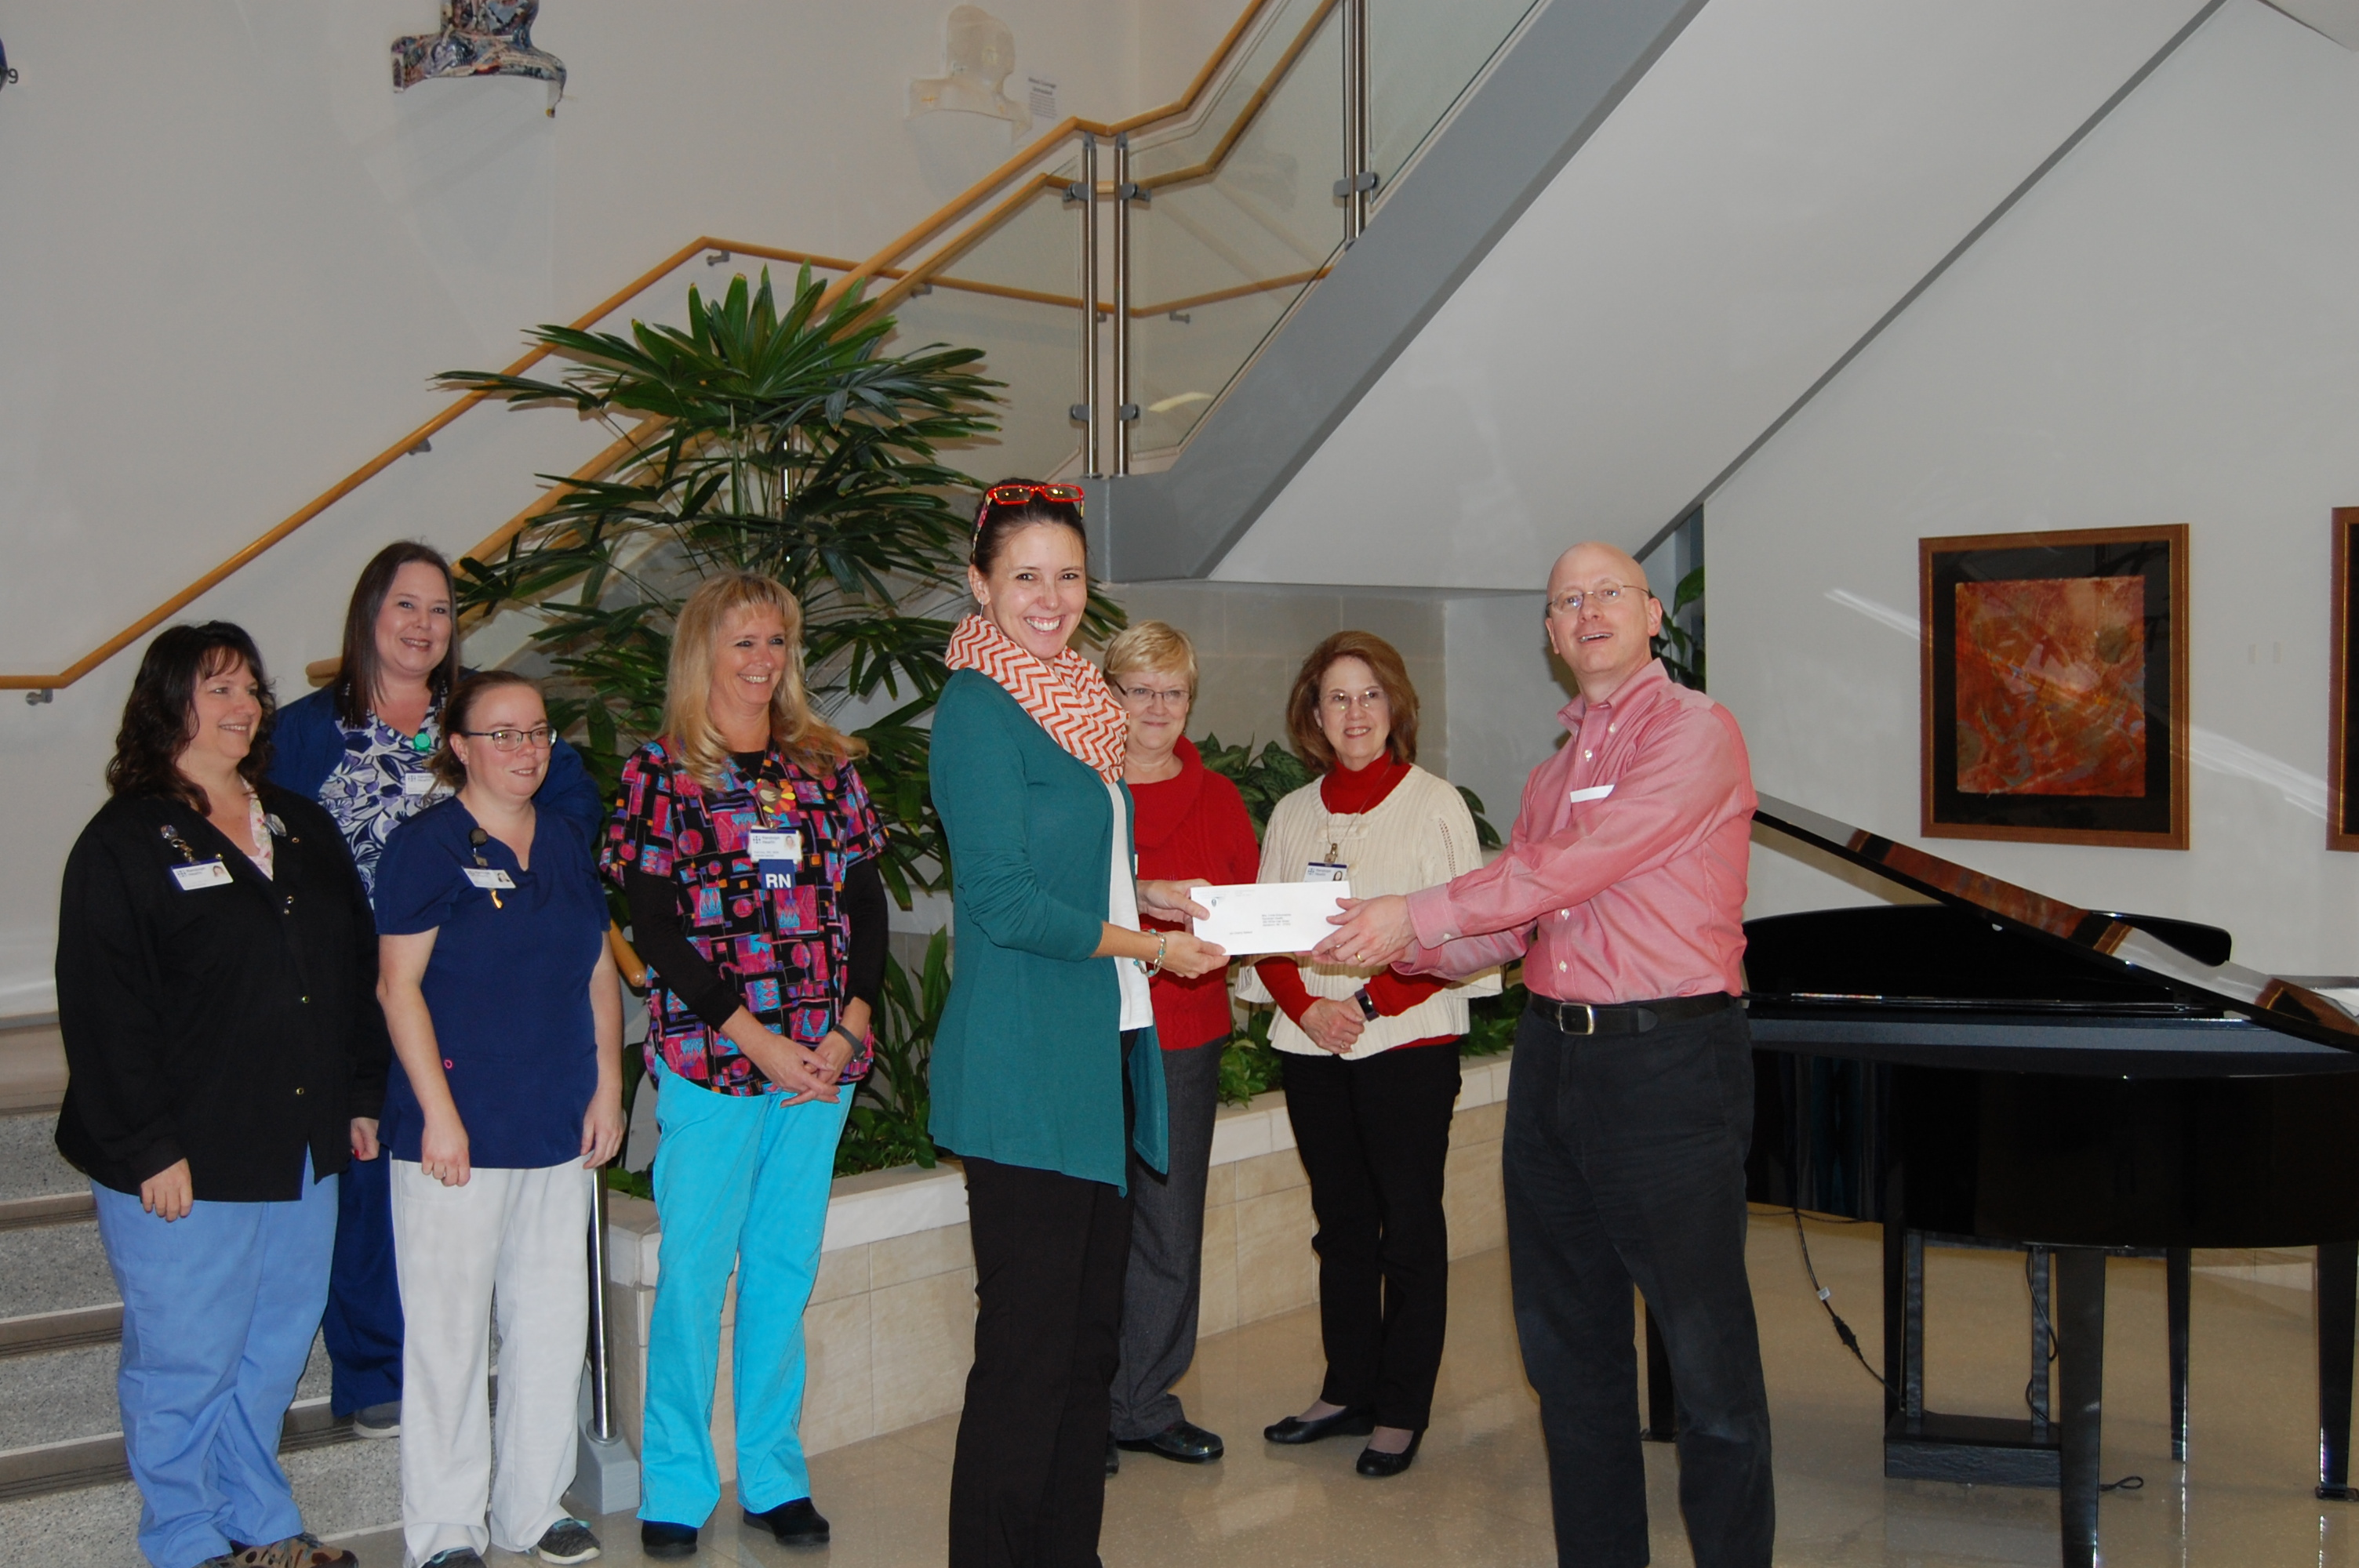 Staff members from Randolph Health are pictured accepting the grant award from NCCF Regional Director Dawn Neighbors.